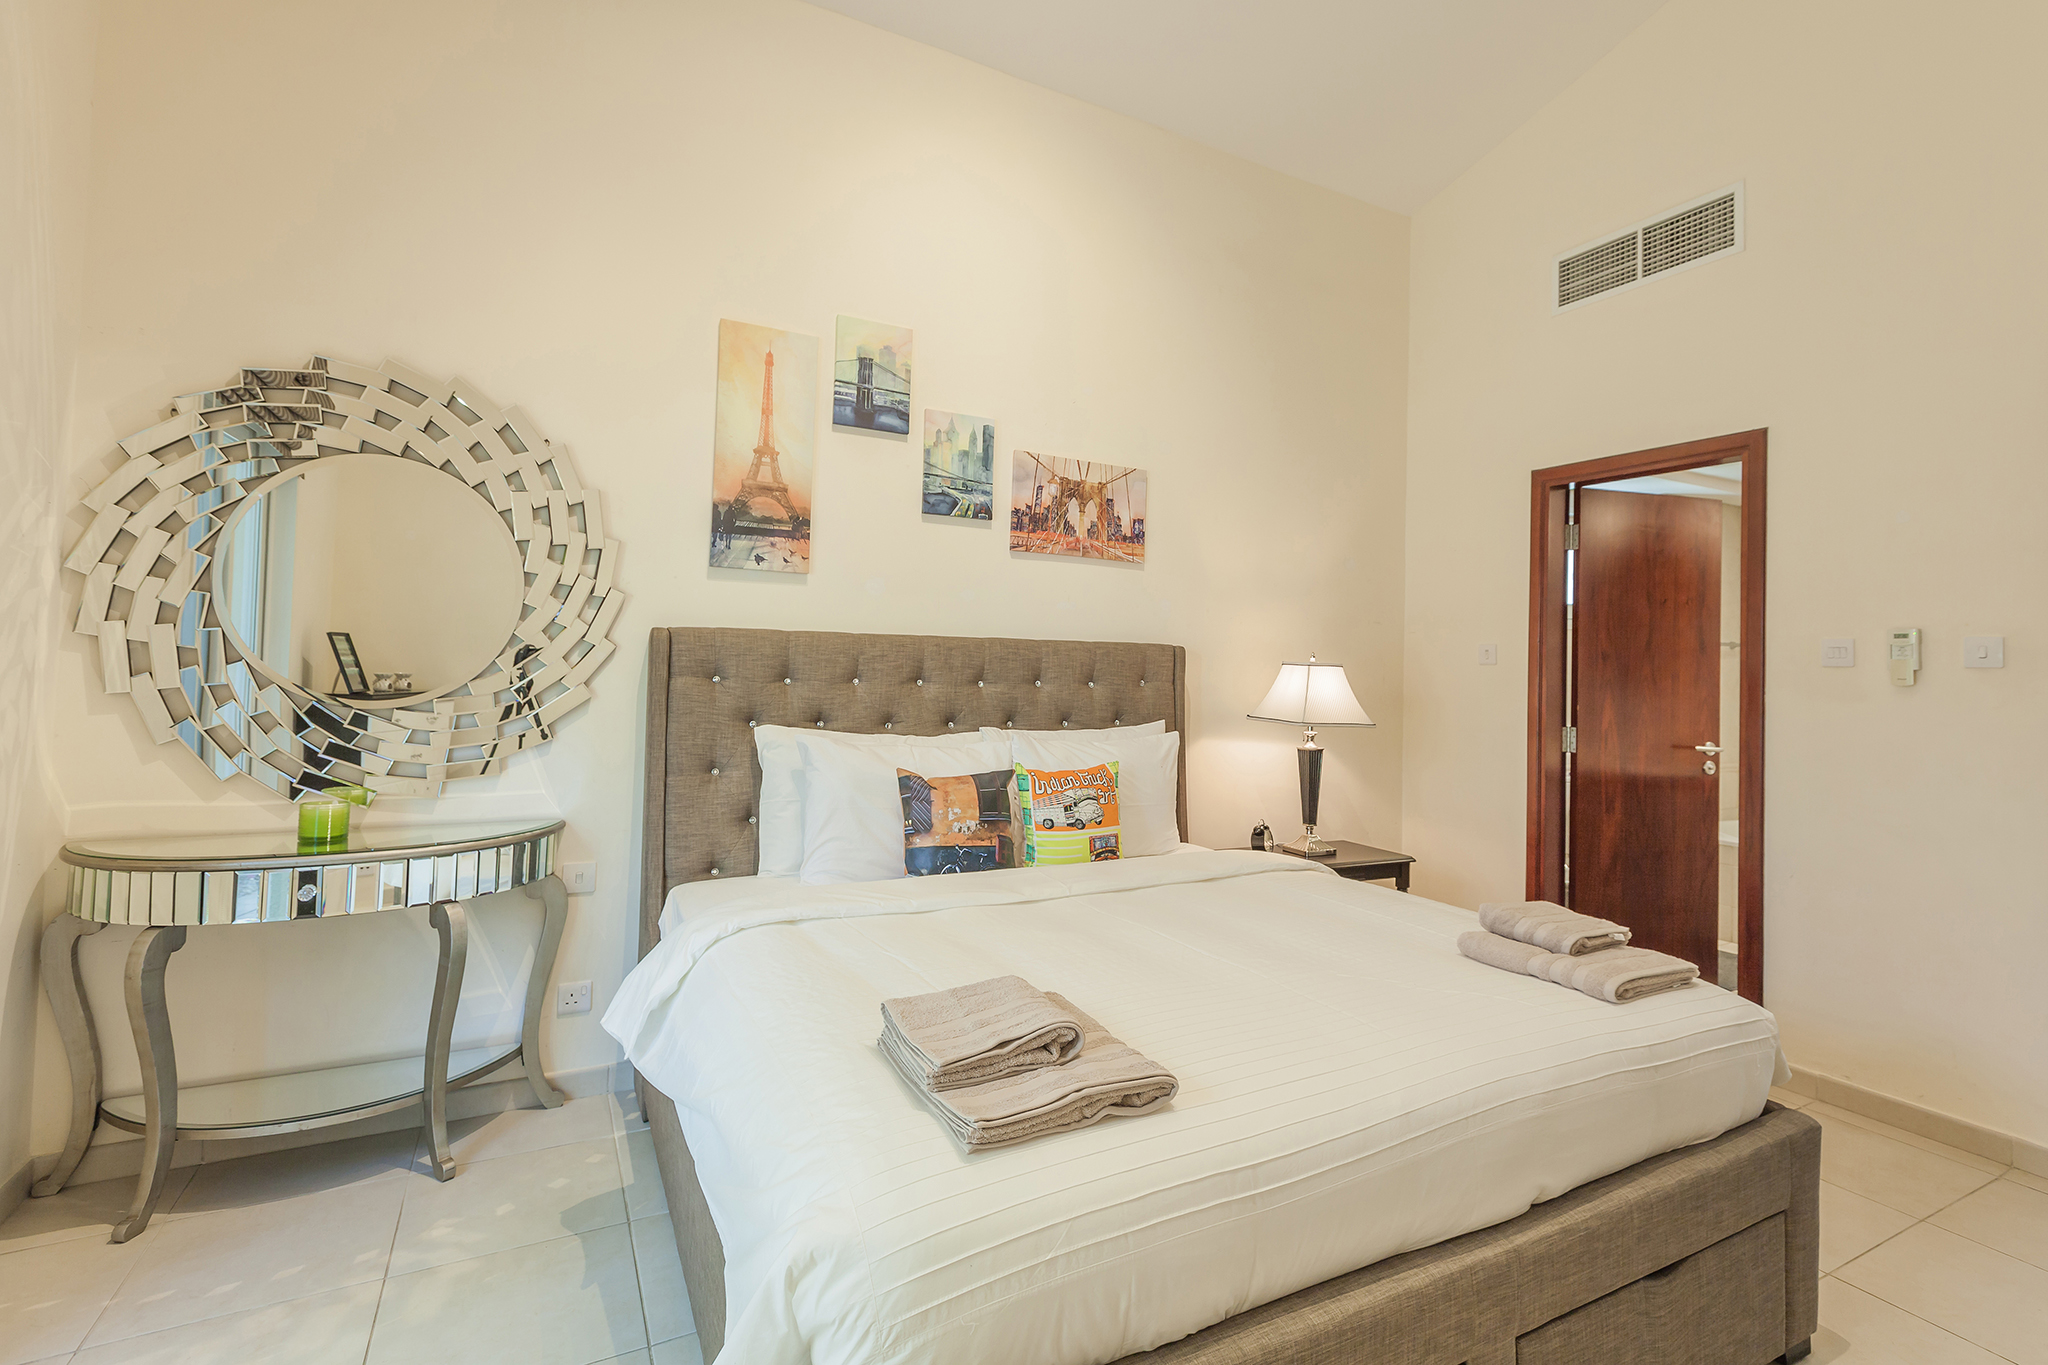 Second bedroom with en-suite and cozy ambiance